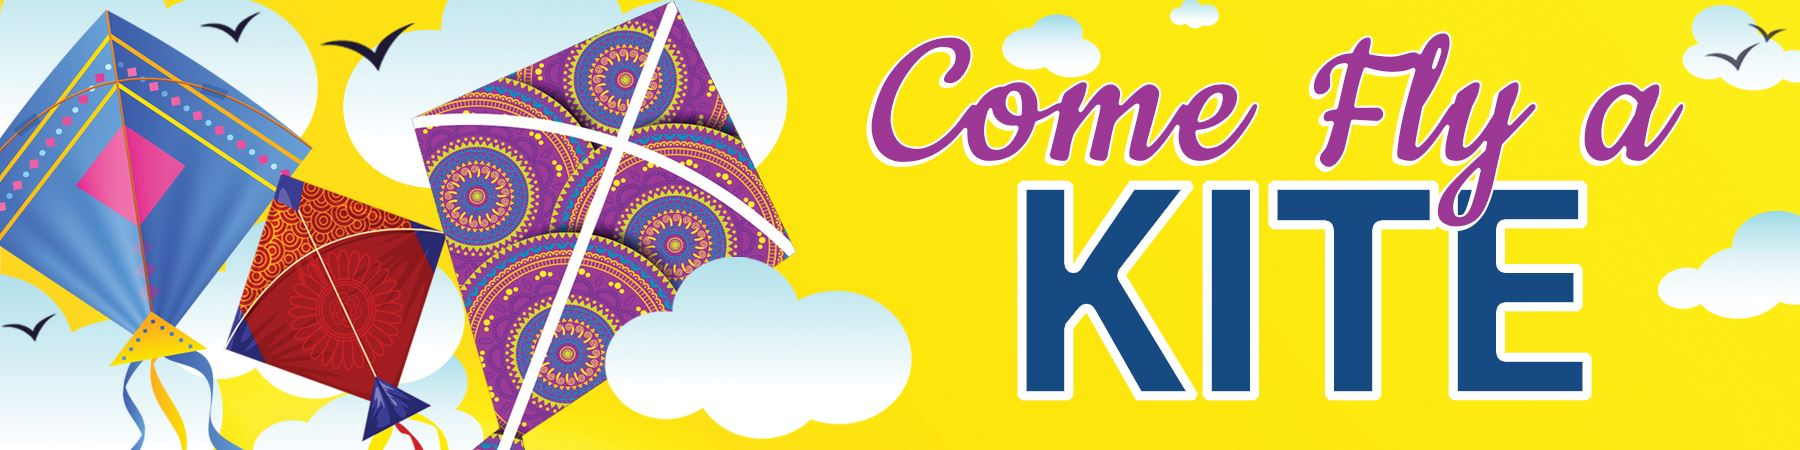 image of Come Fly a Kite banner